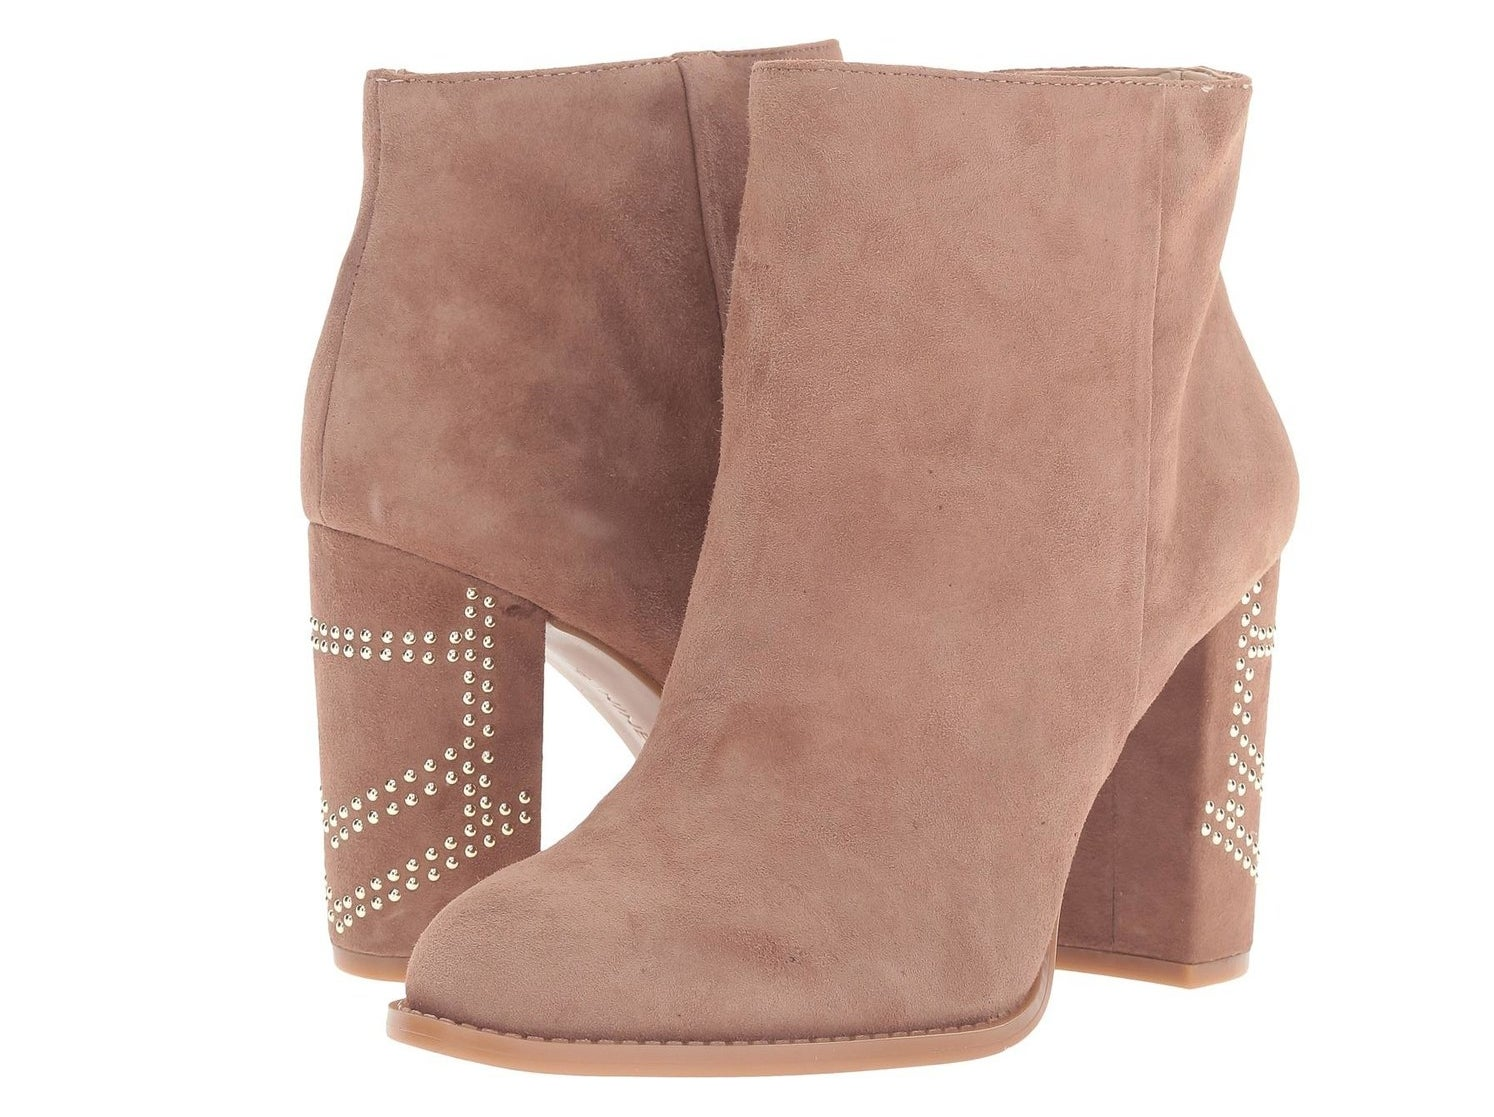 A pair of suede booties with a decorated block heel for extra coolness.